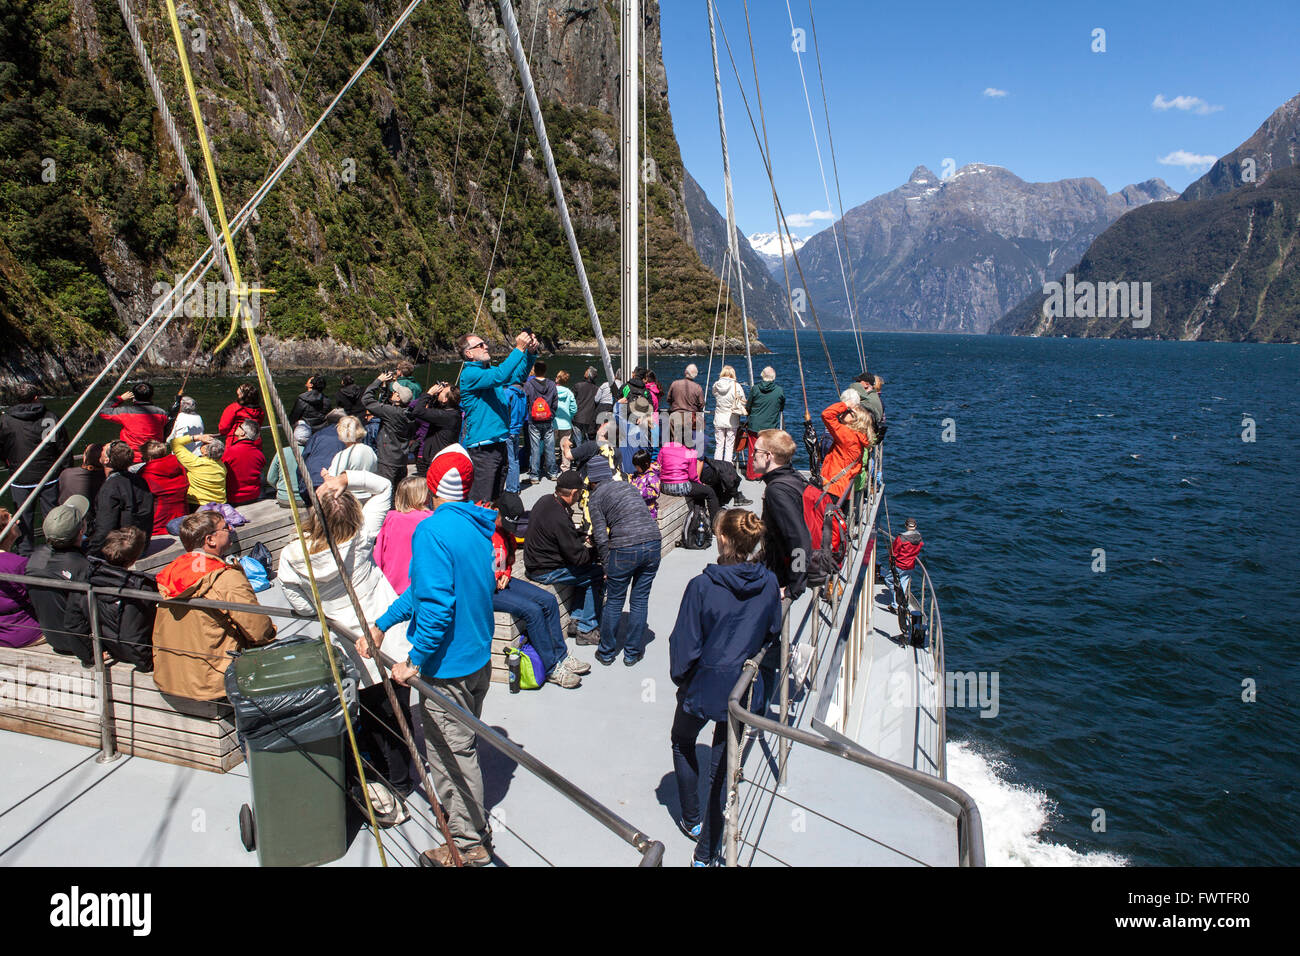 tourists on the ship in the Milford Sound, New Zealand - Stock Image